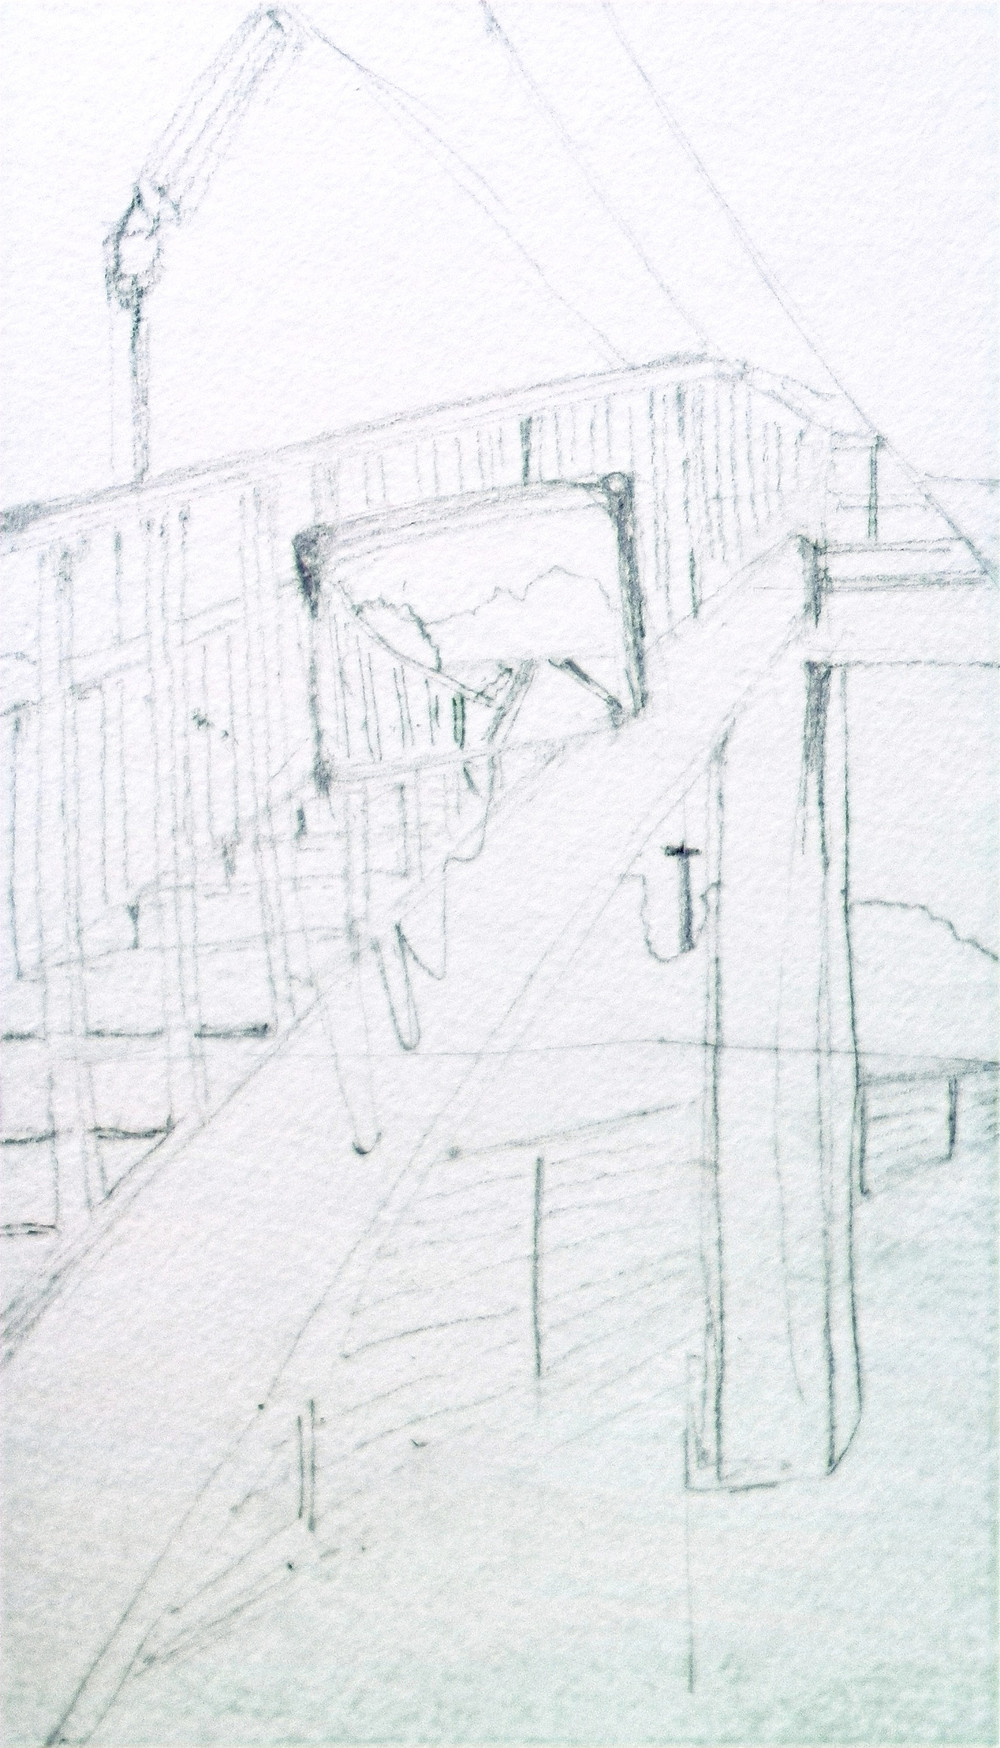 When the Train Stop: On My Way to Takayama. Pencil sketch on Fluid Cold-Pressed Paper.